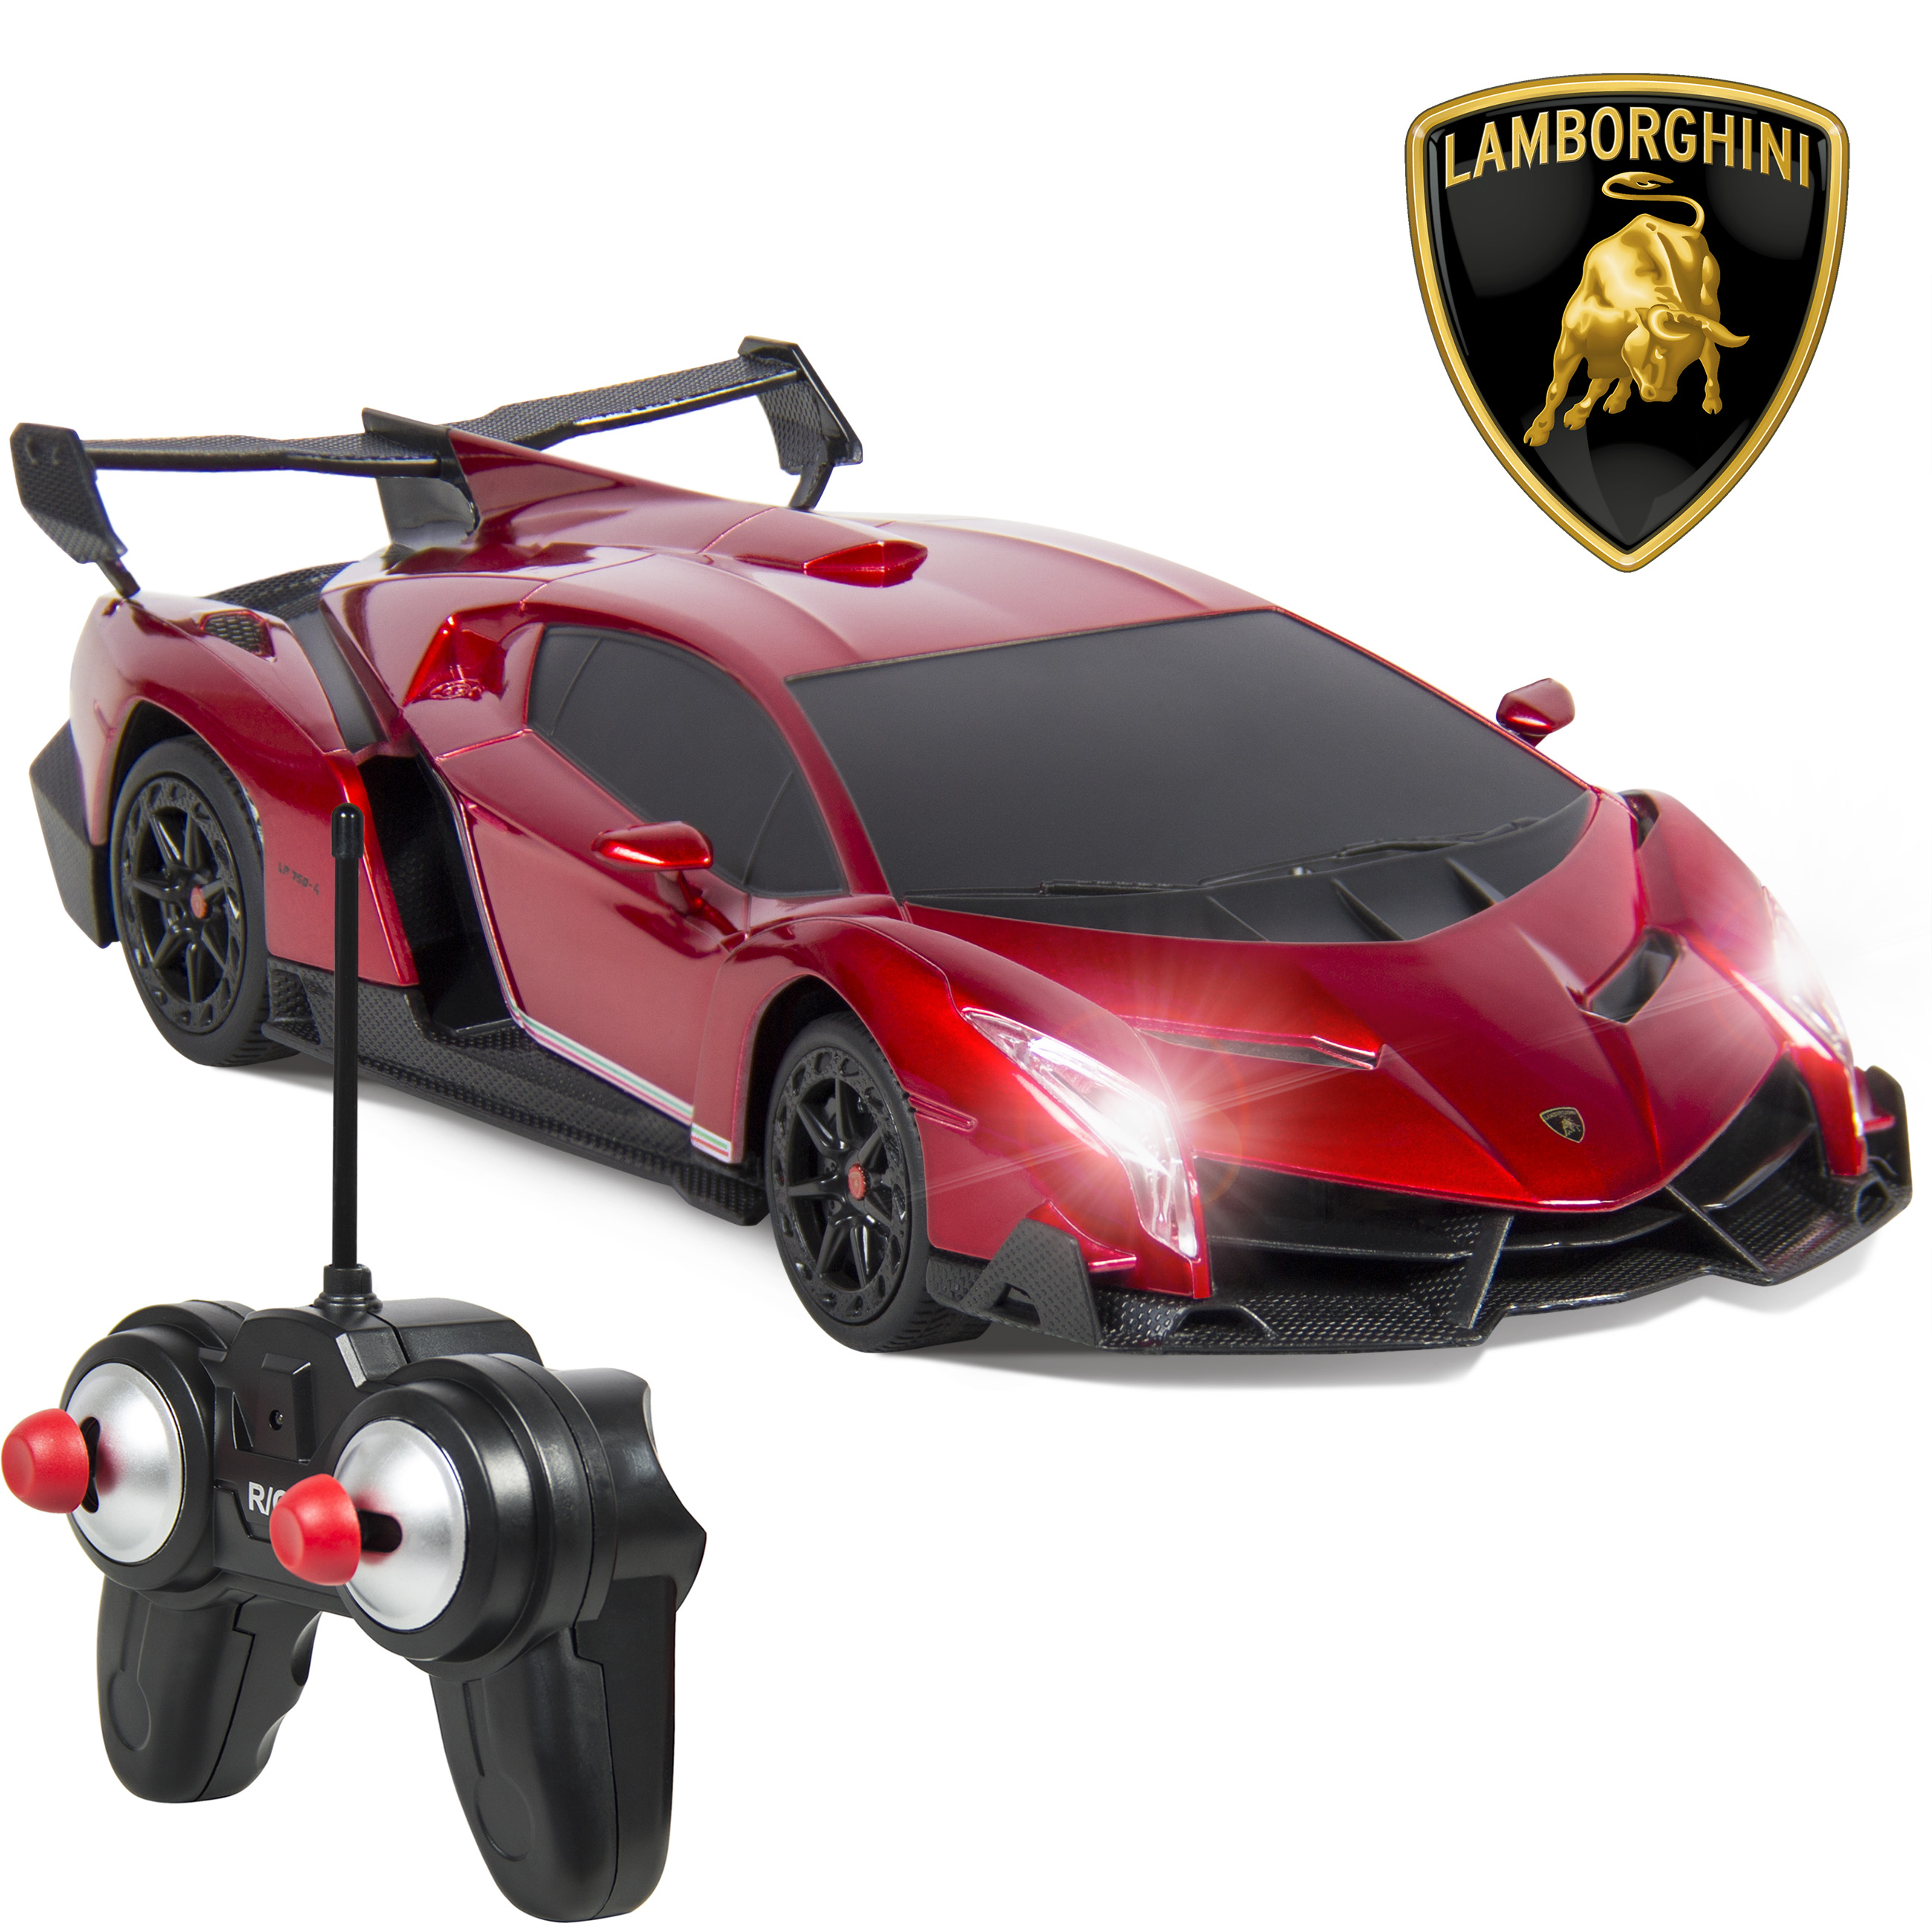 Best Choice Products 1/24 Officially Licensed RC Lamborghini Veneno Sport Racing Car W/ 27MHz Remote Controller